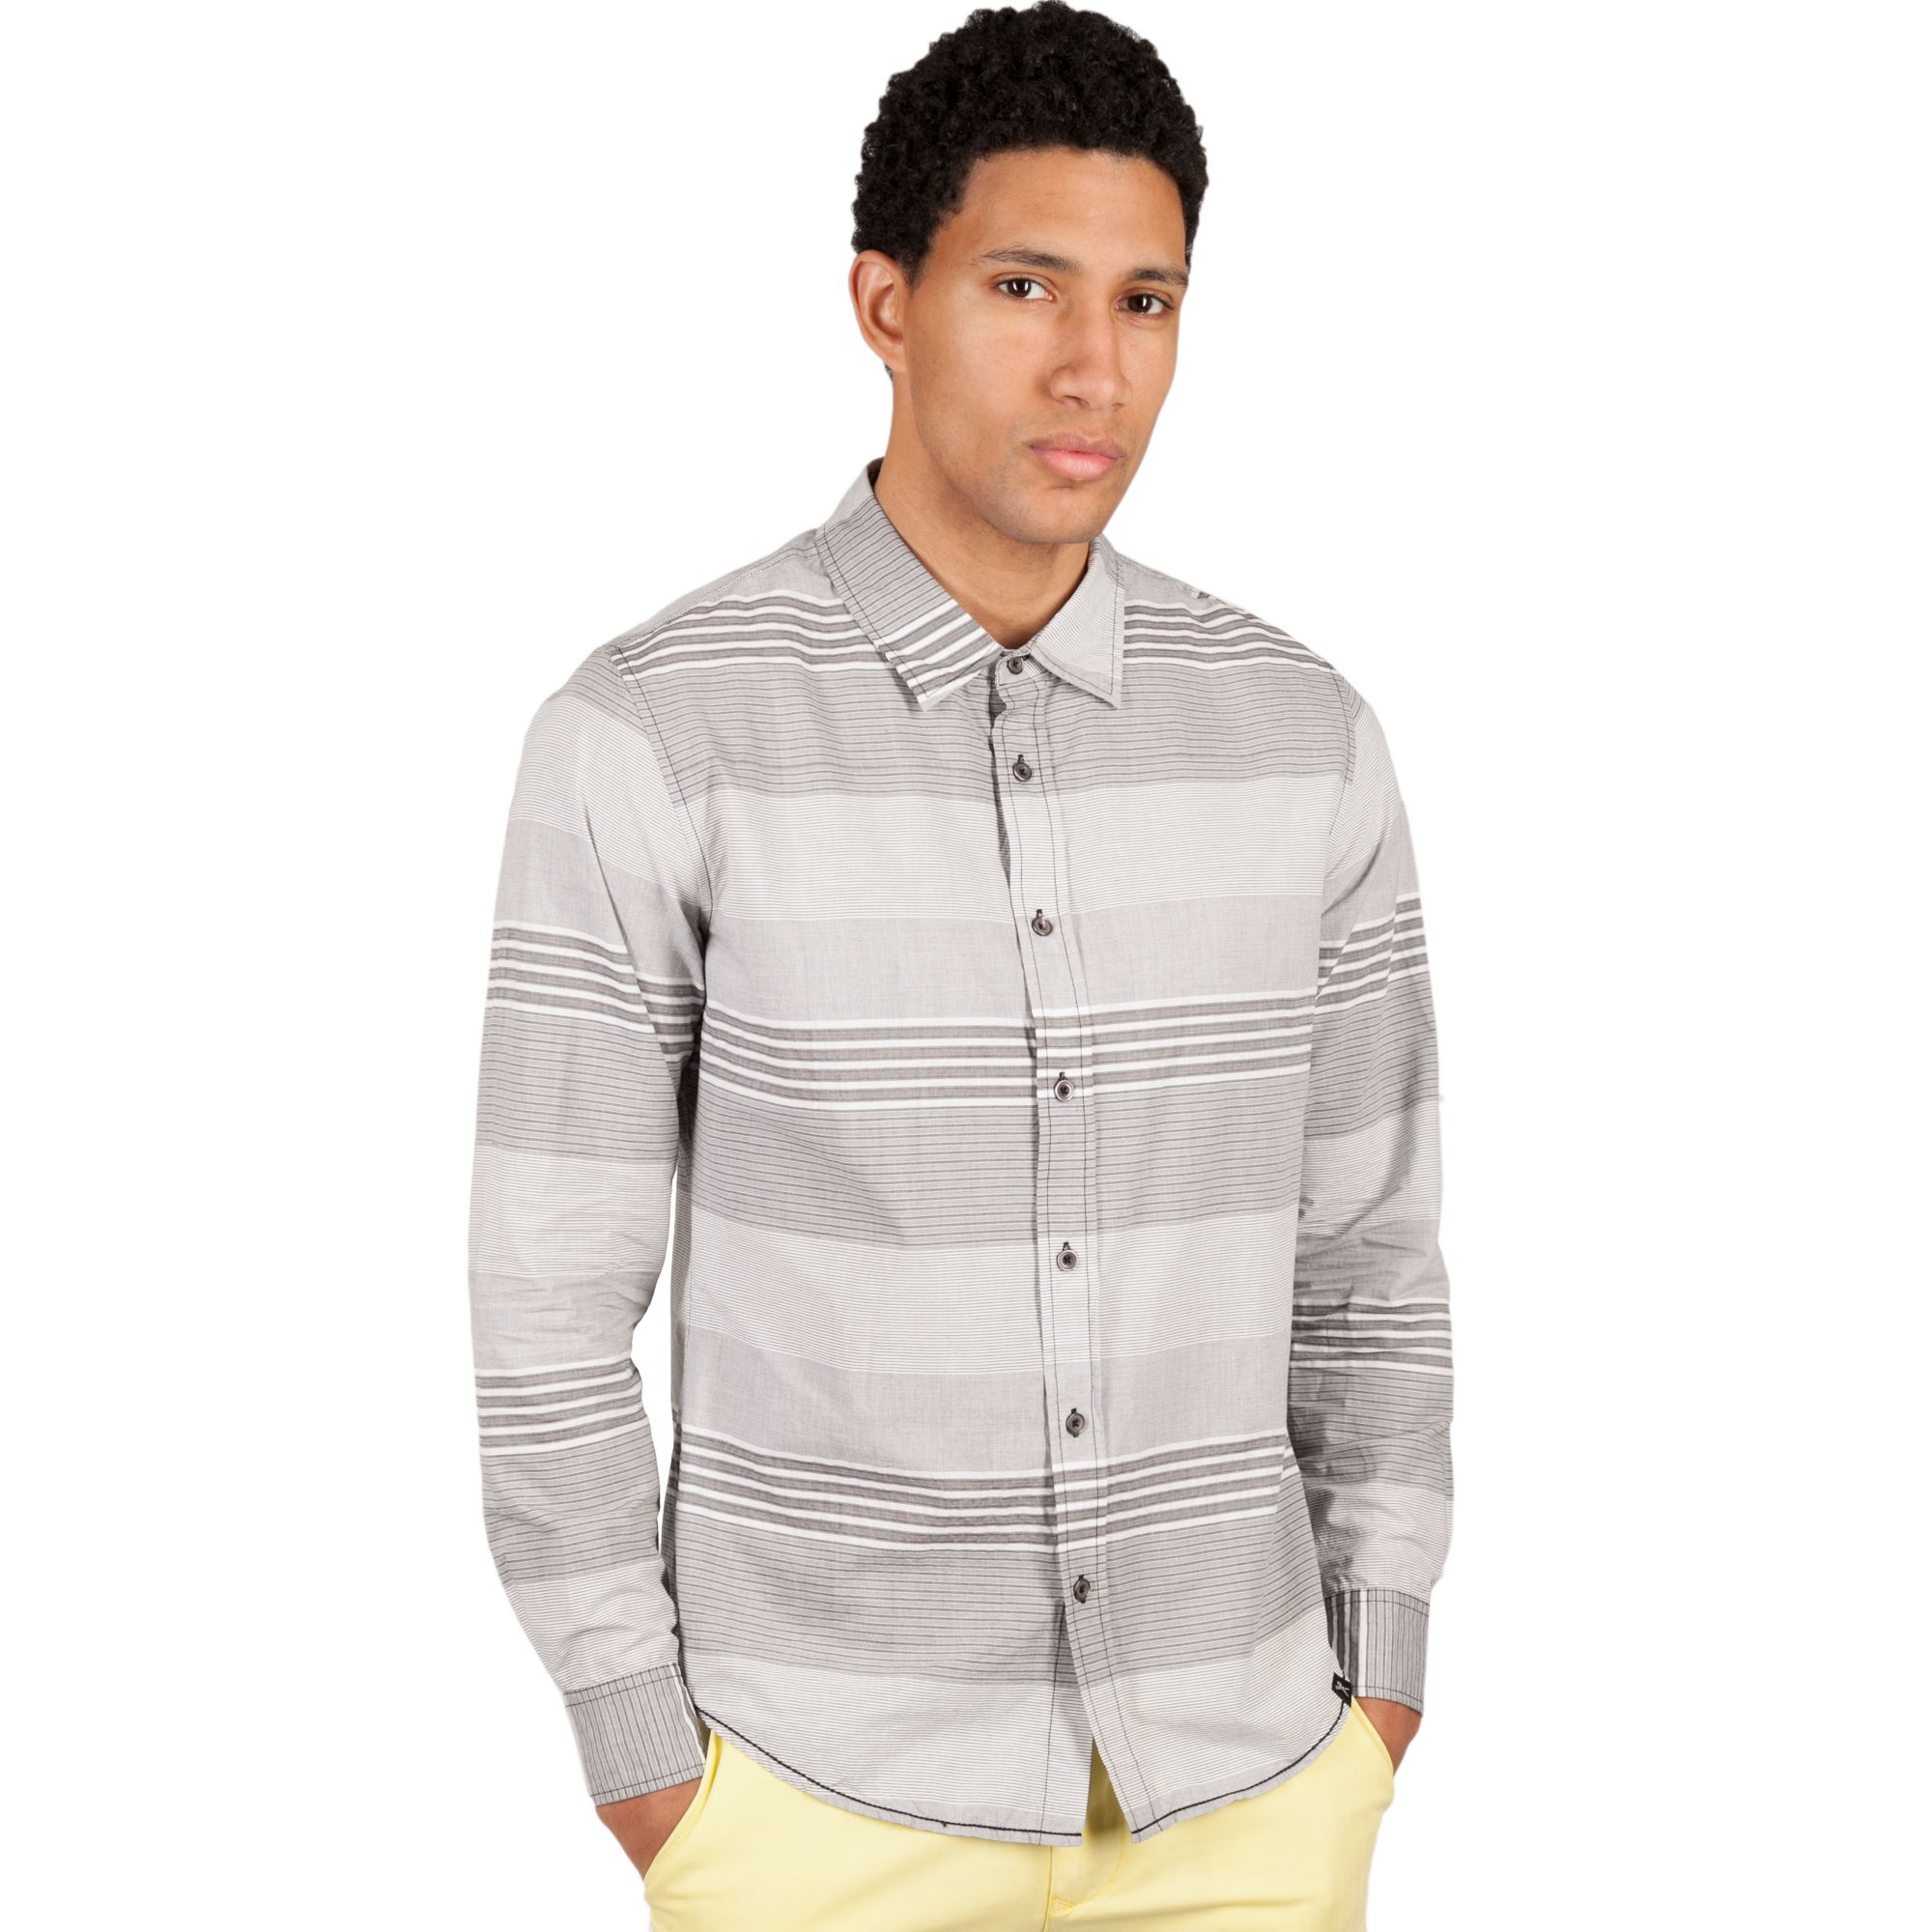 Marc ecko slim fit long sleeve button front horizon shirt for Marc ecko dress shirts